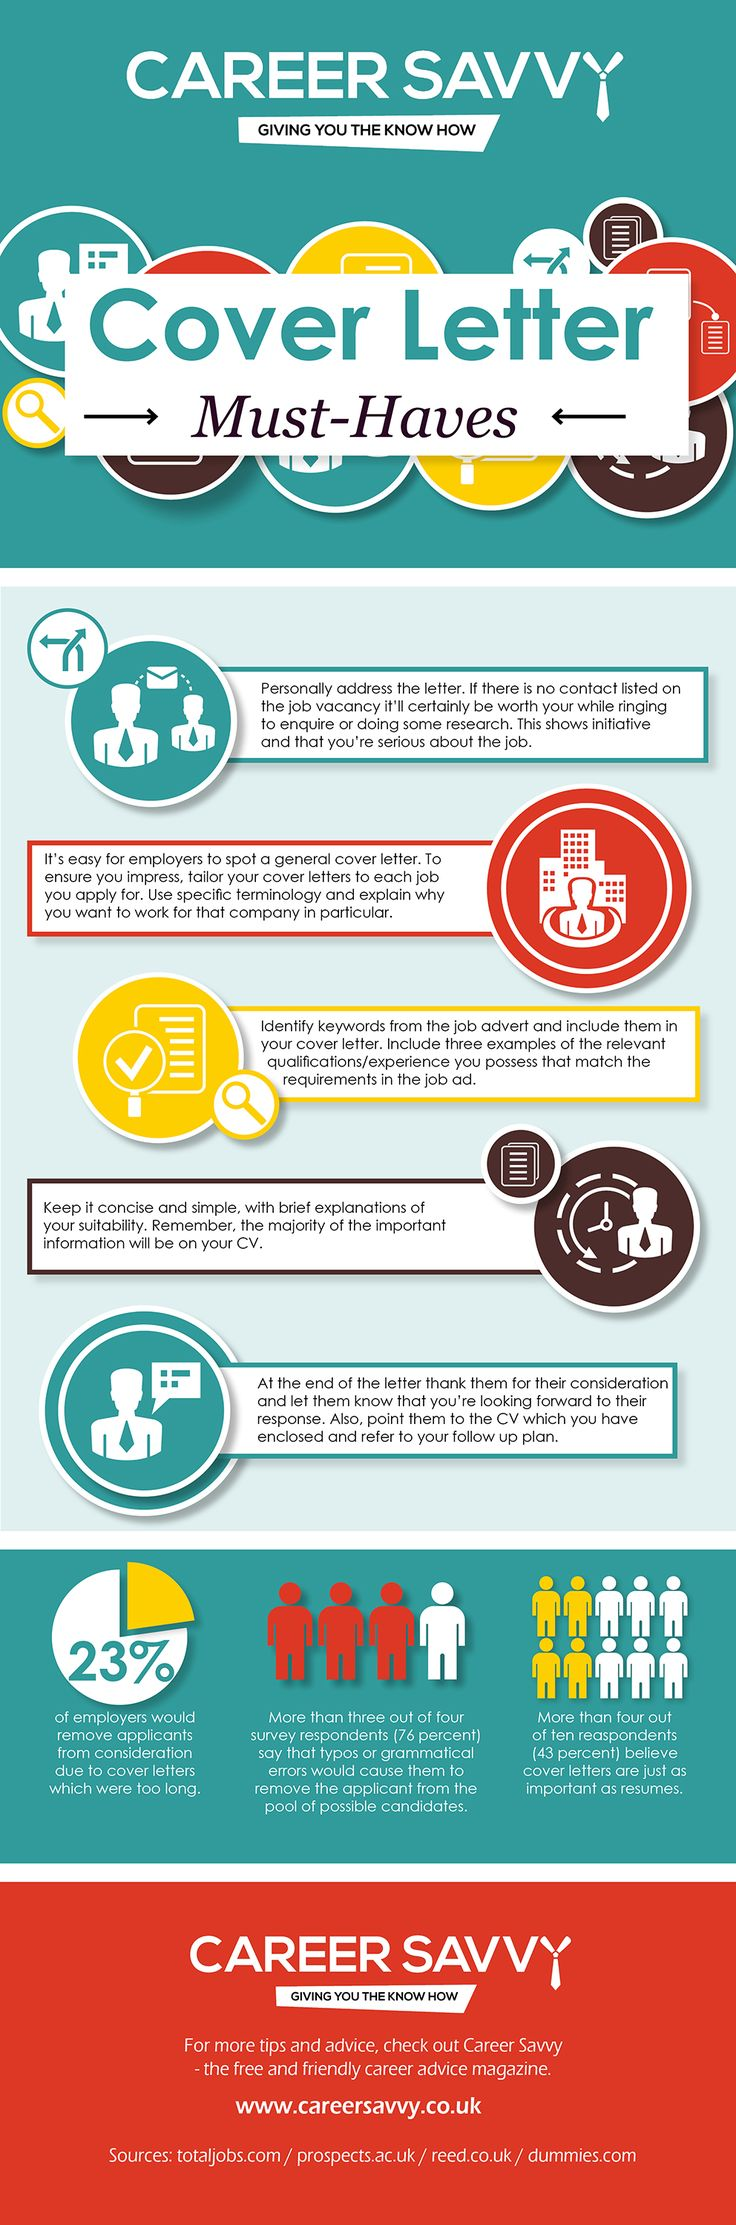 To avoid missing out on a potential job and help yourself stand out from the crowd, have a look at some vital things your cover letter needs to contain http://www.careersavvy.co.uk/infographic-cover-letter-must-haves/